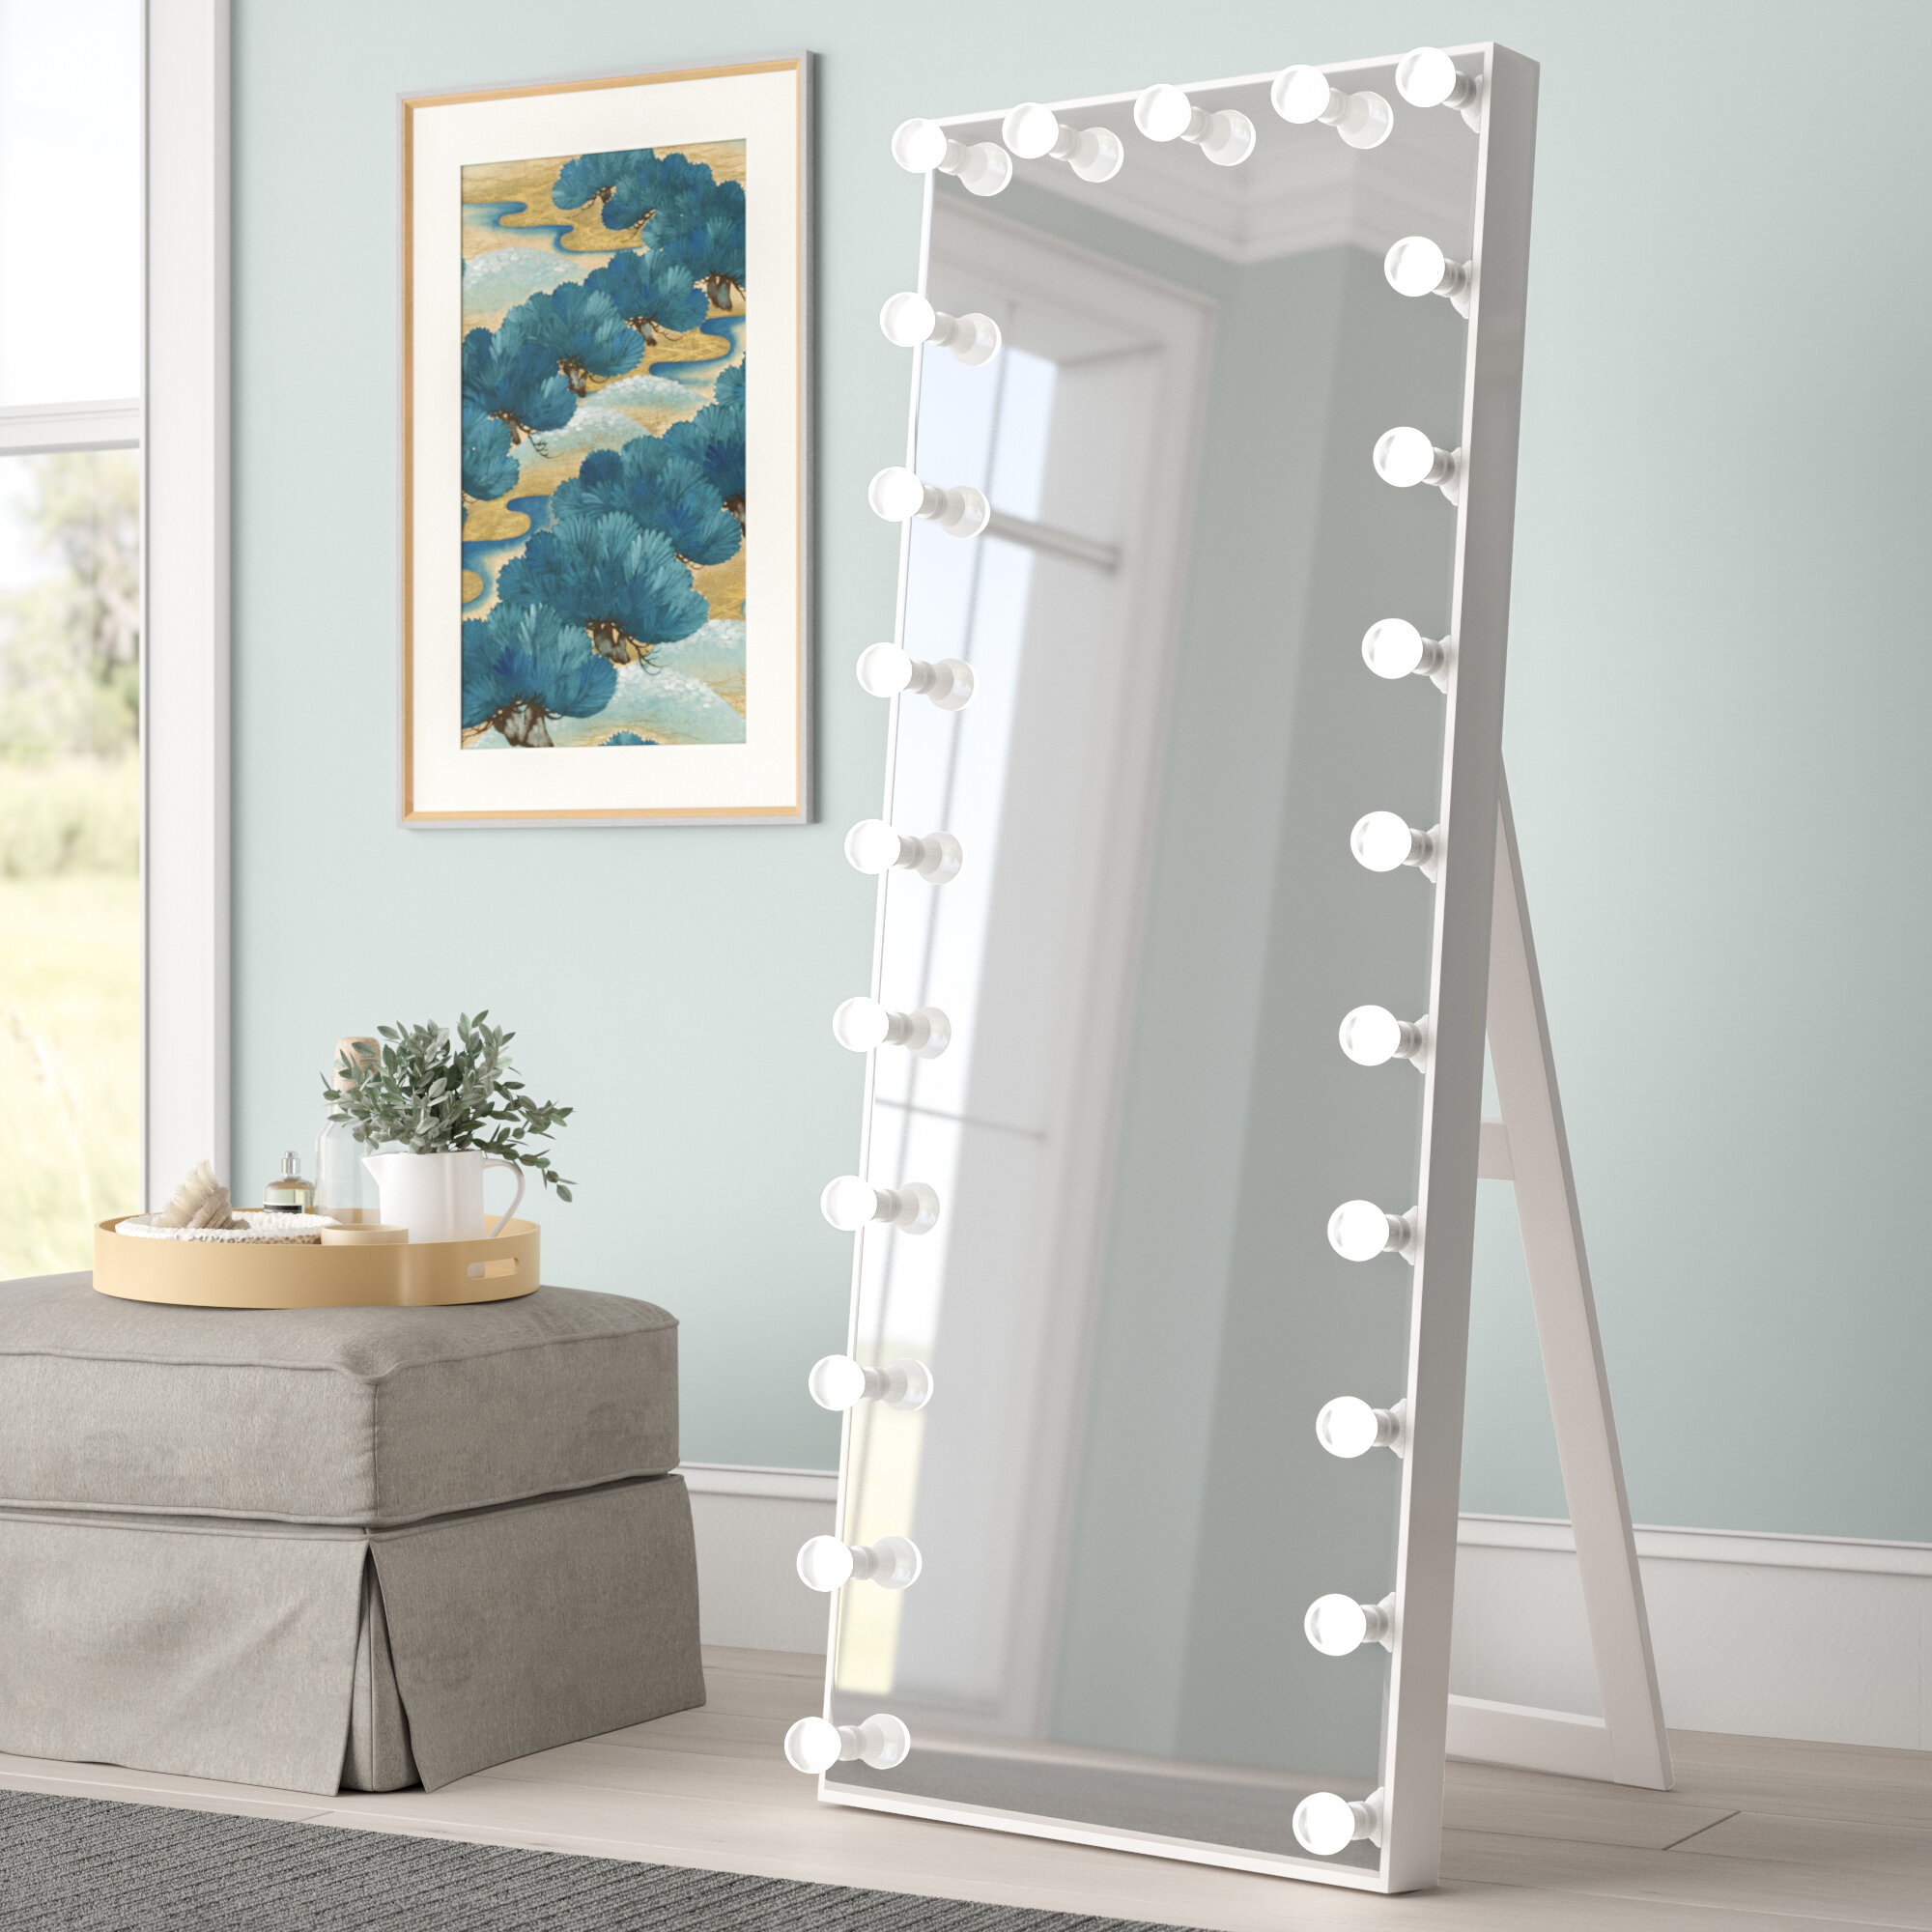 Standing Mirror With Lights